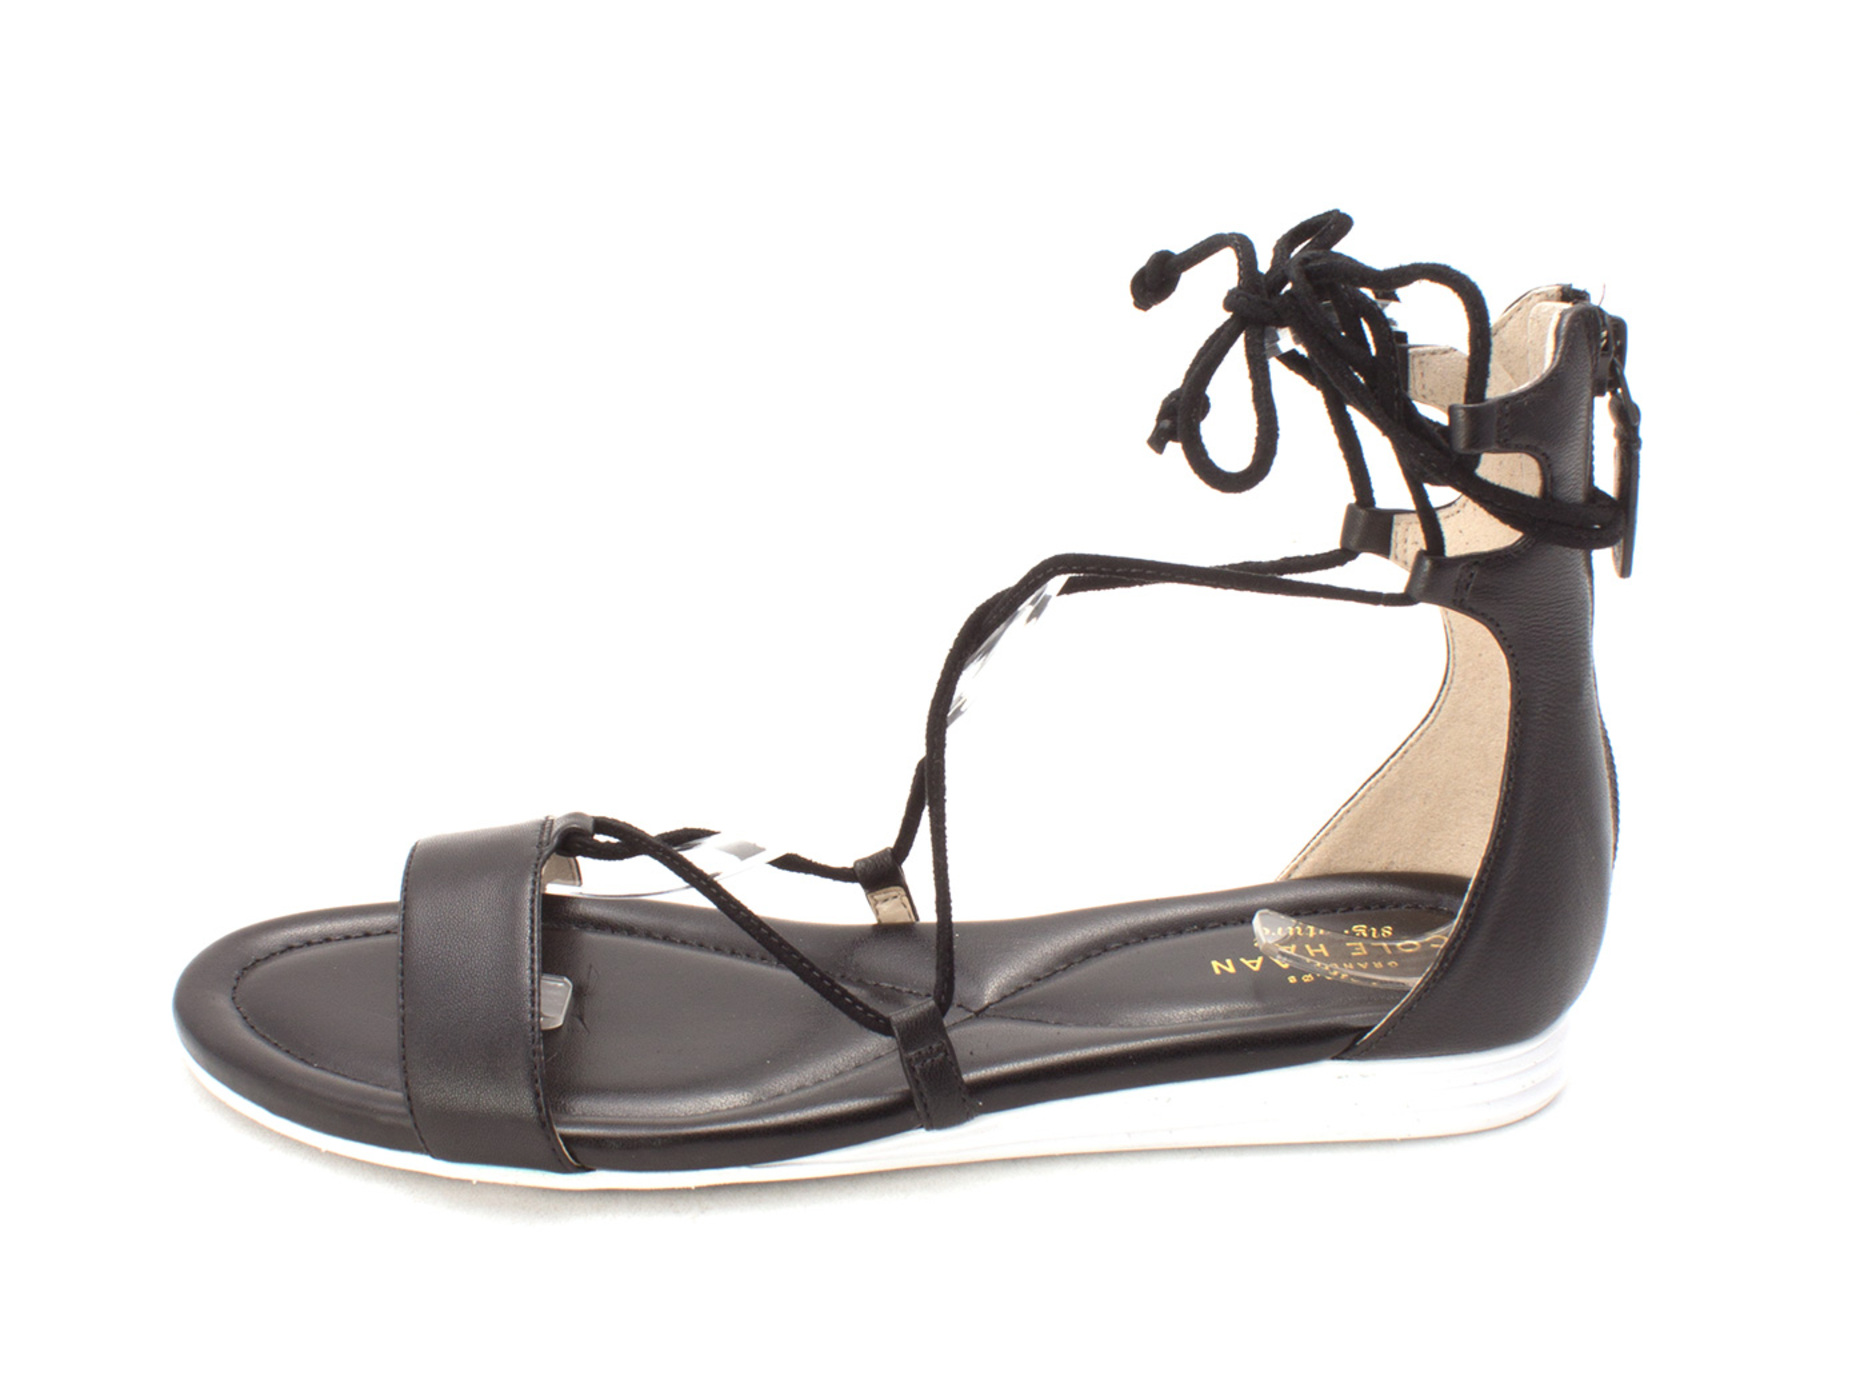 Cole Haan Womens Original Grand Sandals Open Toe Casual Strappy Sandals Grand bedf20